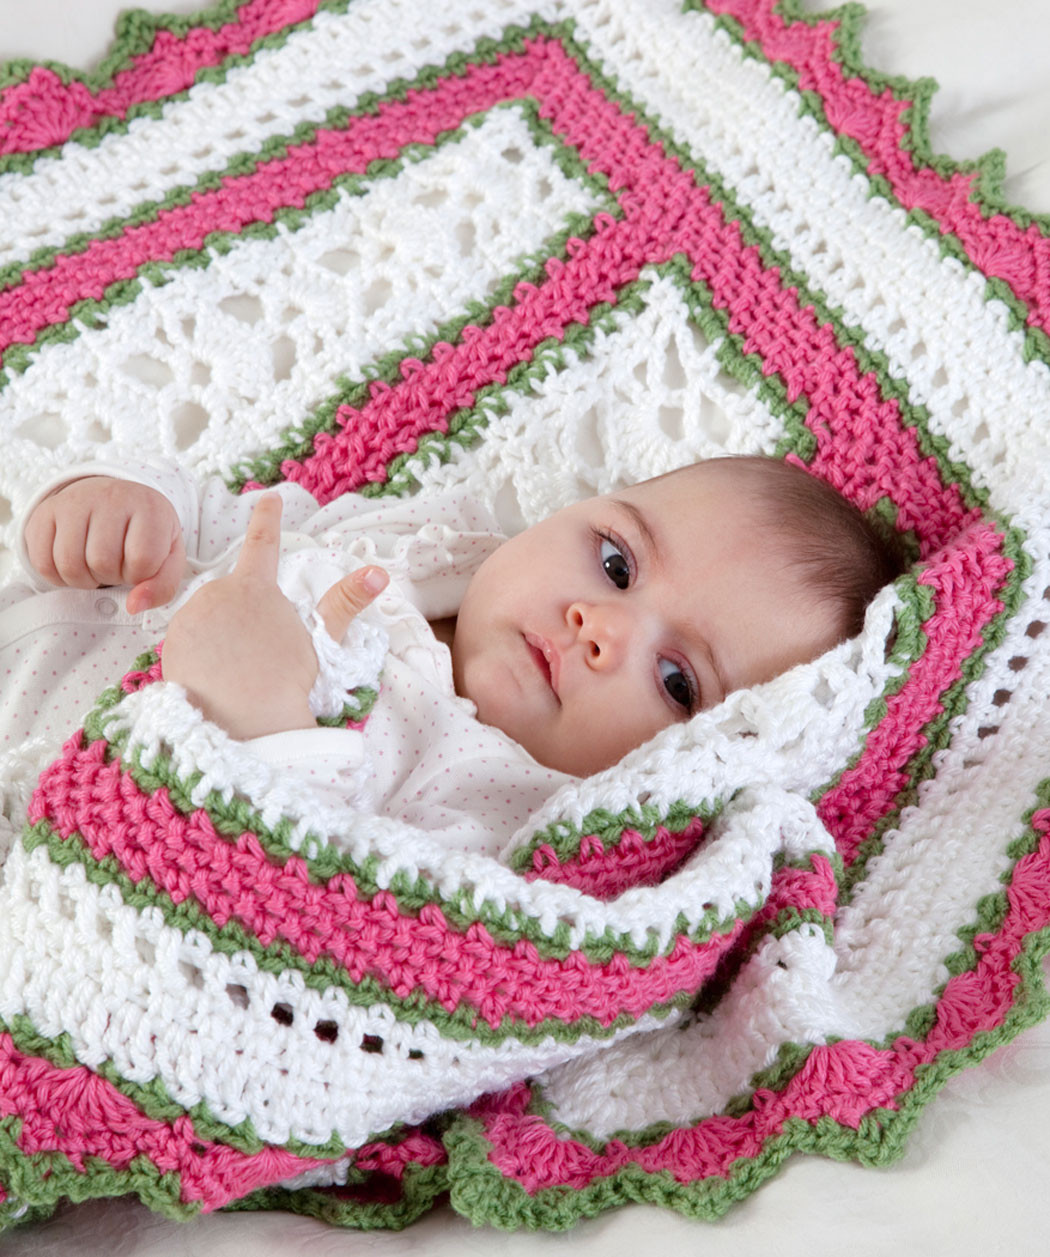 Crochet toddler Blanket Awesome 10 Beautiful Baby Blanket Free Patterns Of Amazing 41 Ideas Crochet toddler Blanket